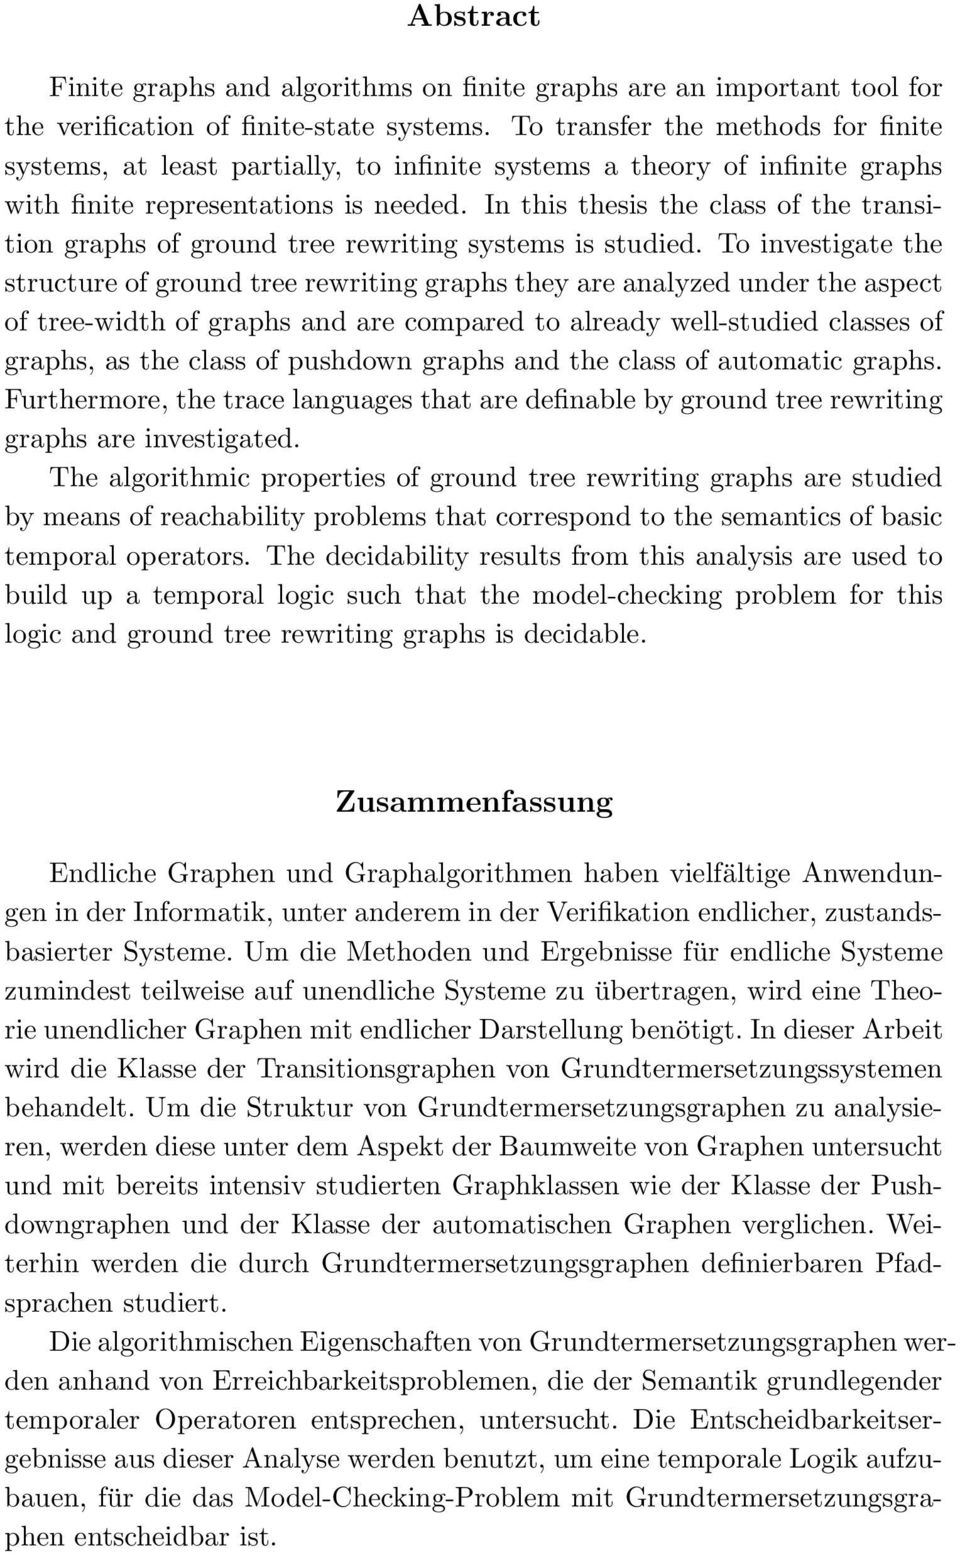 ground tree rewriting graphs they are analyzed under the aspect of tree-width of graphs and are compared to already well-studied classes of graphs, as the class of pushdown graphs and the class of